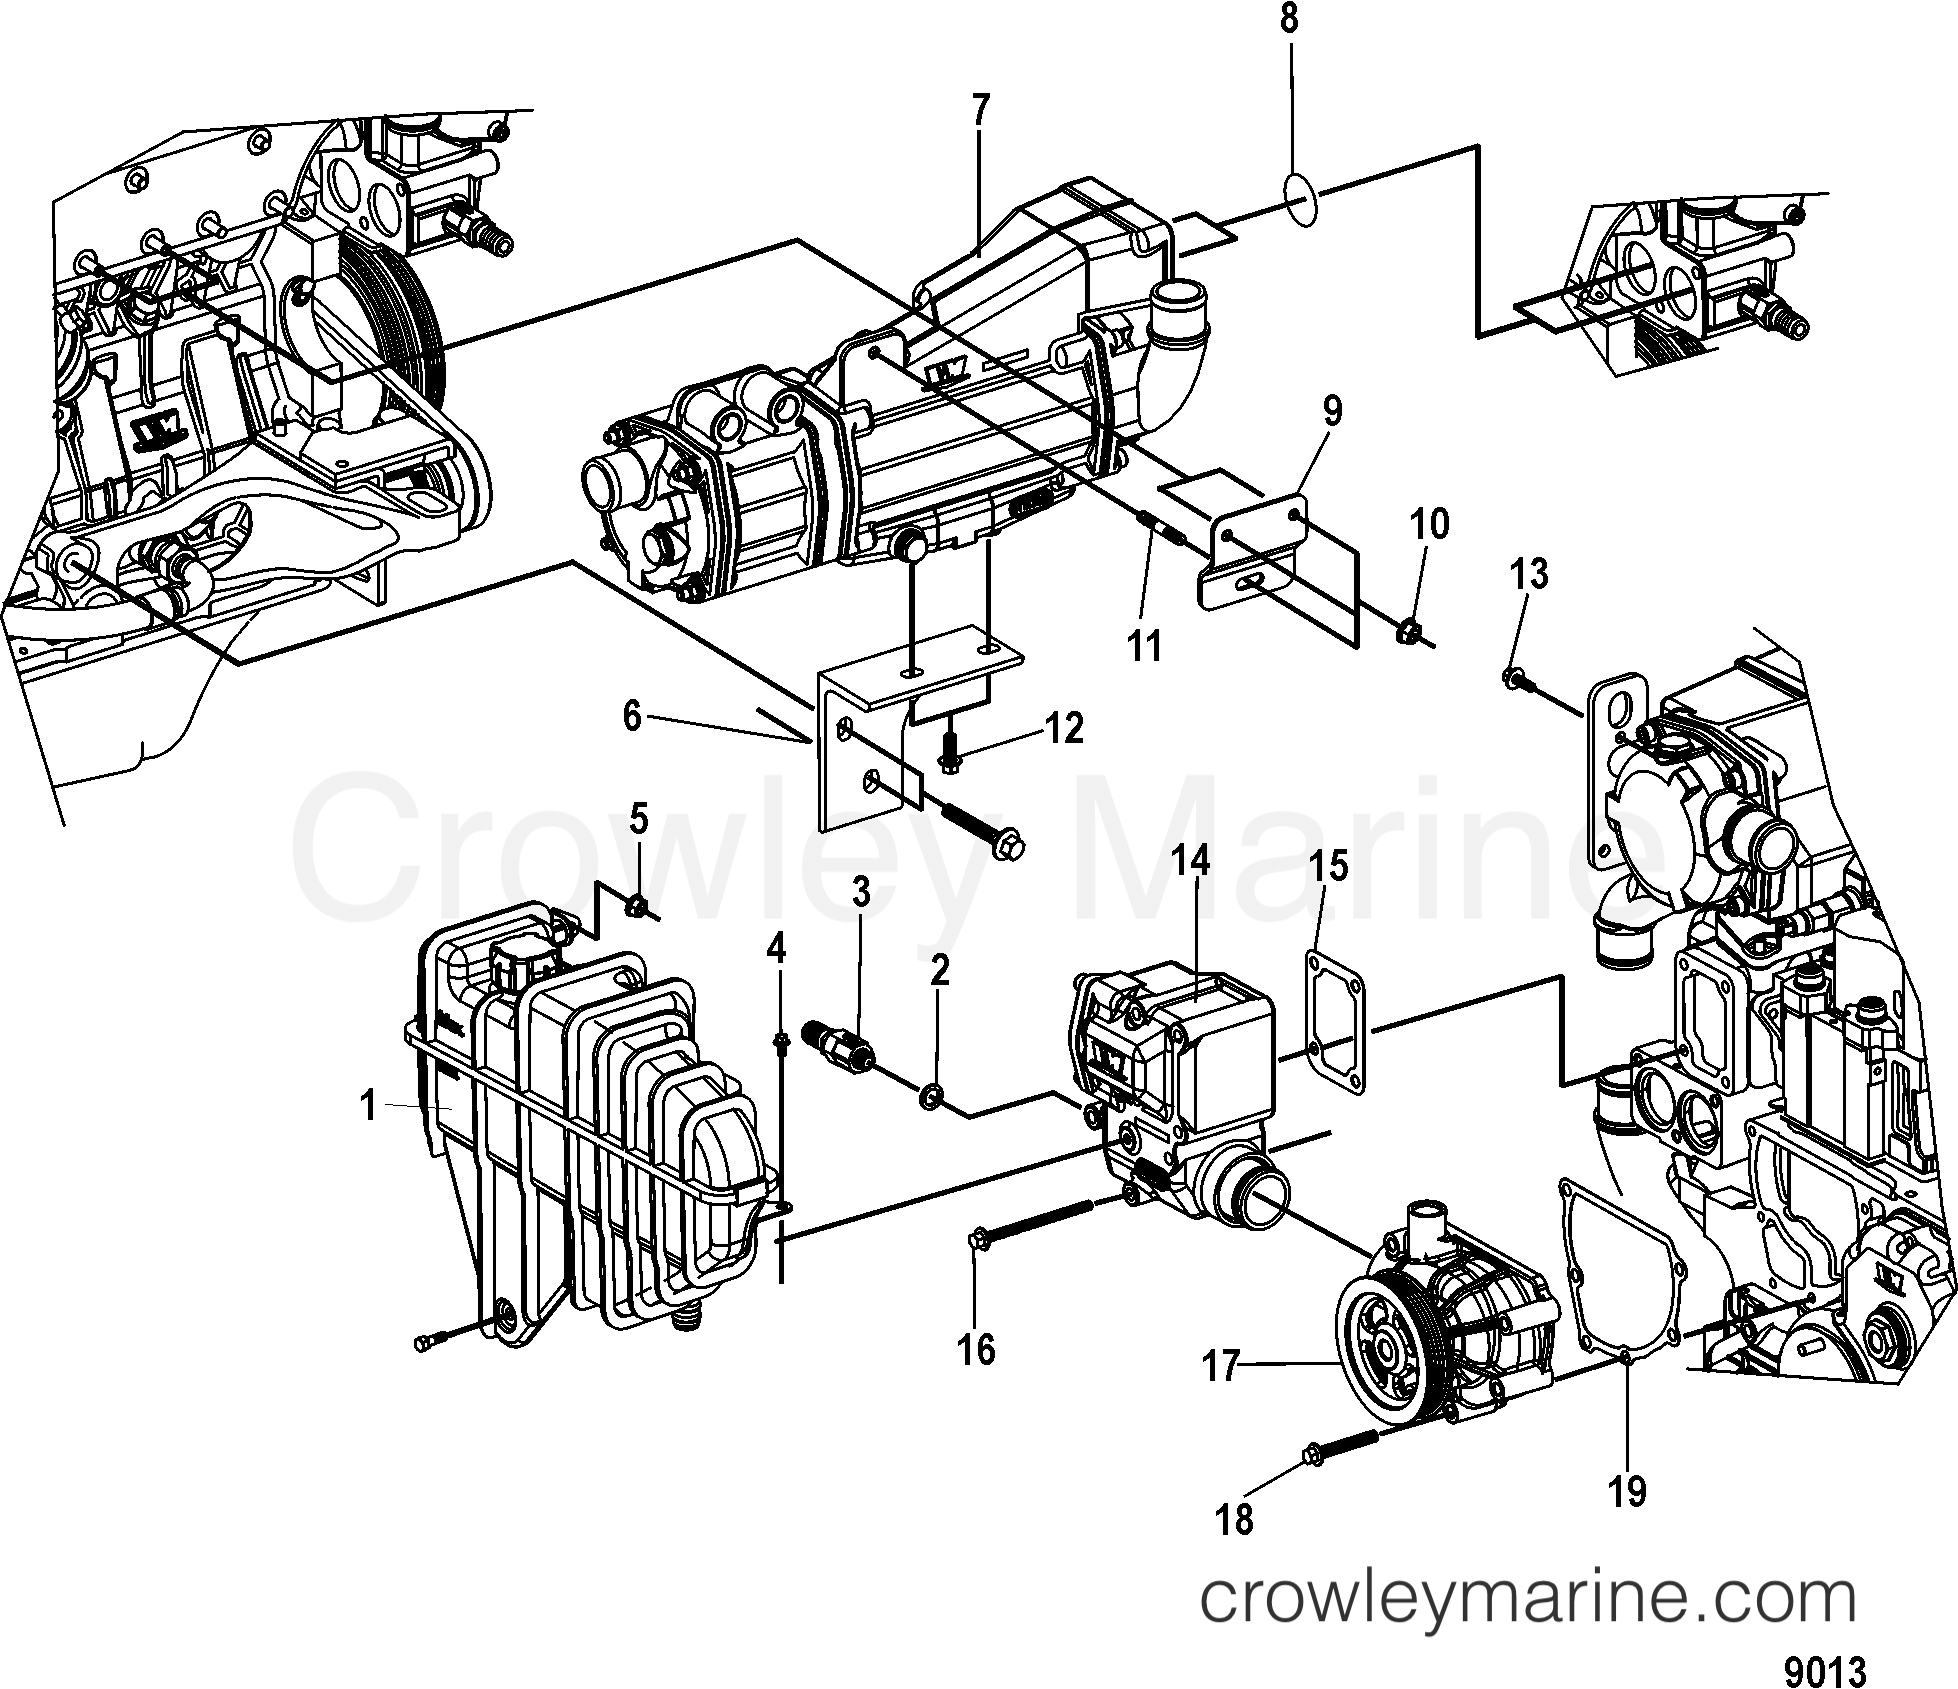 Cooling System Components